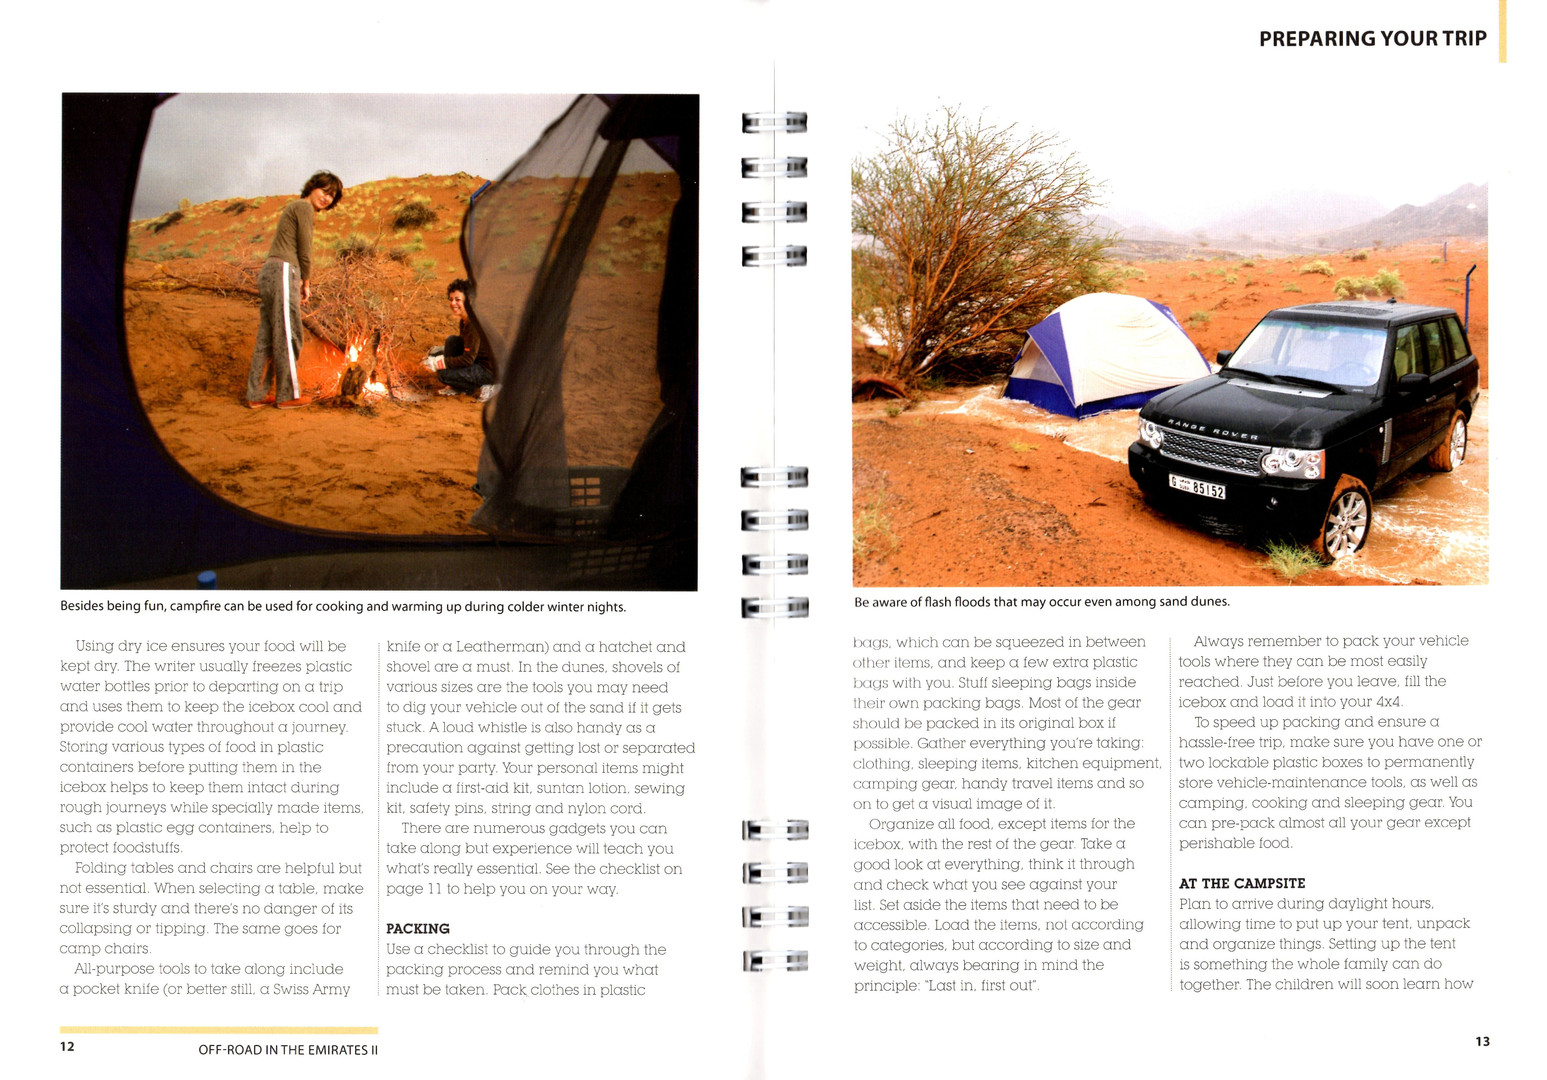 Off-Road in the Emirates II